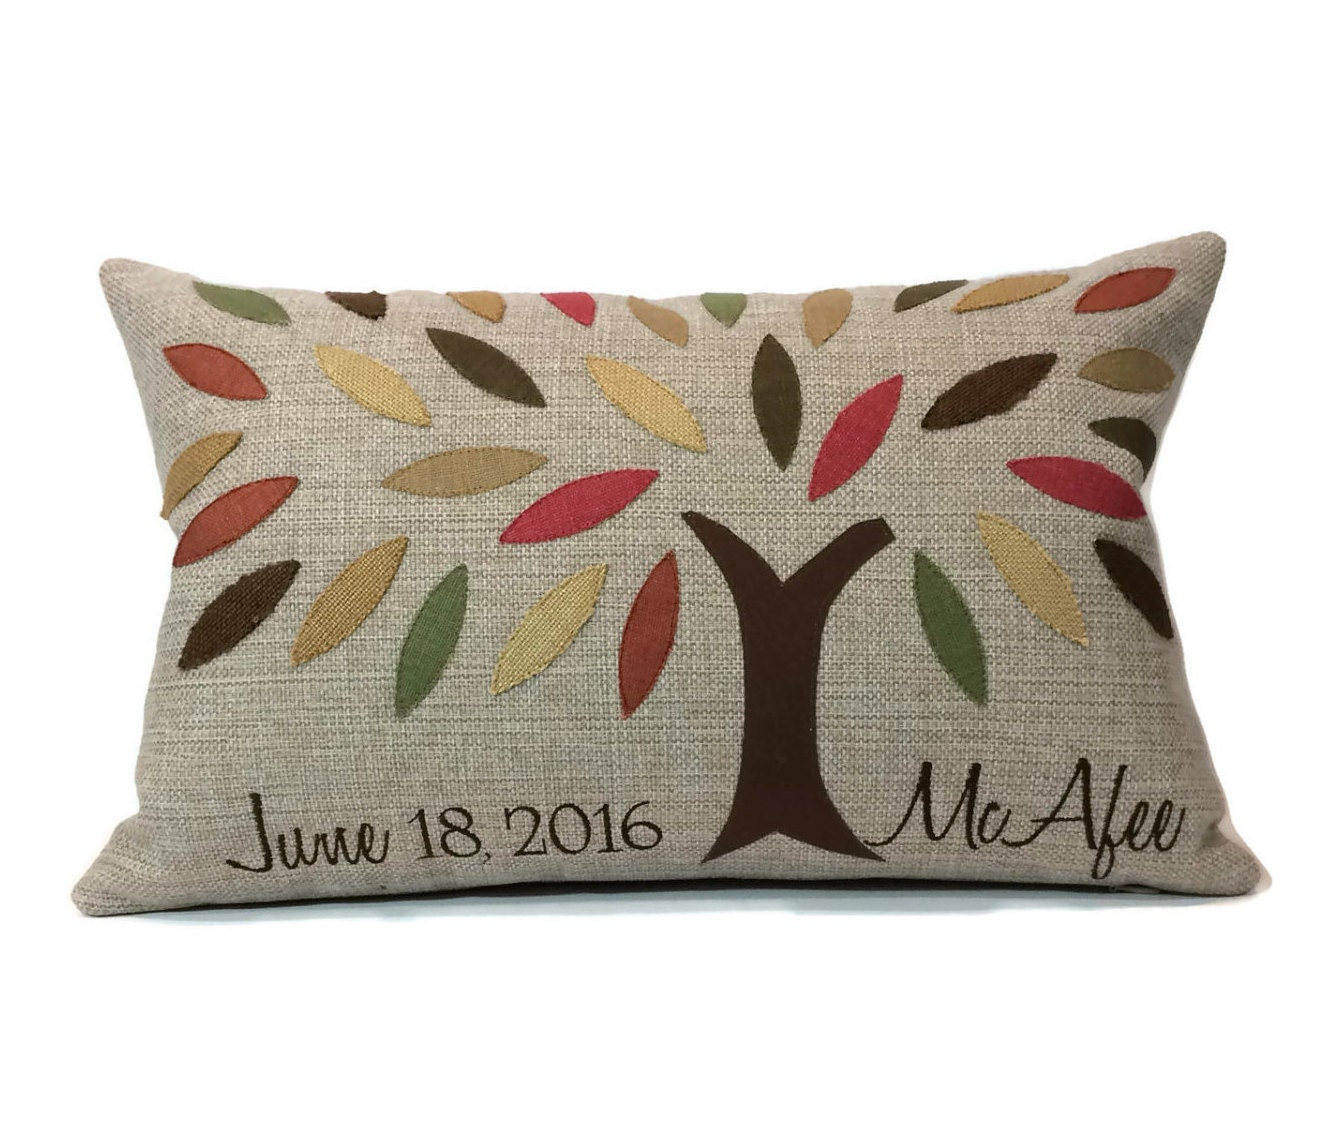 Personalized Embroidered Throw Pillows : Family Tree Applique and Embroidered Decorative Throw Pillow Cover - Embroidered Pillow Cover ...